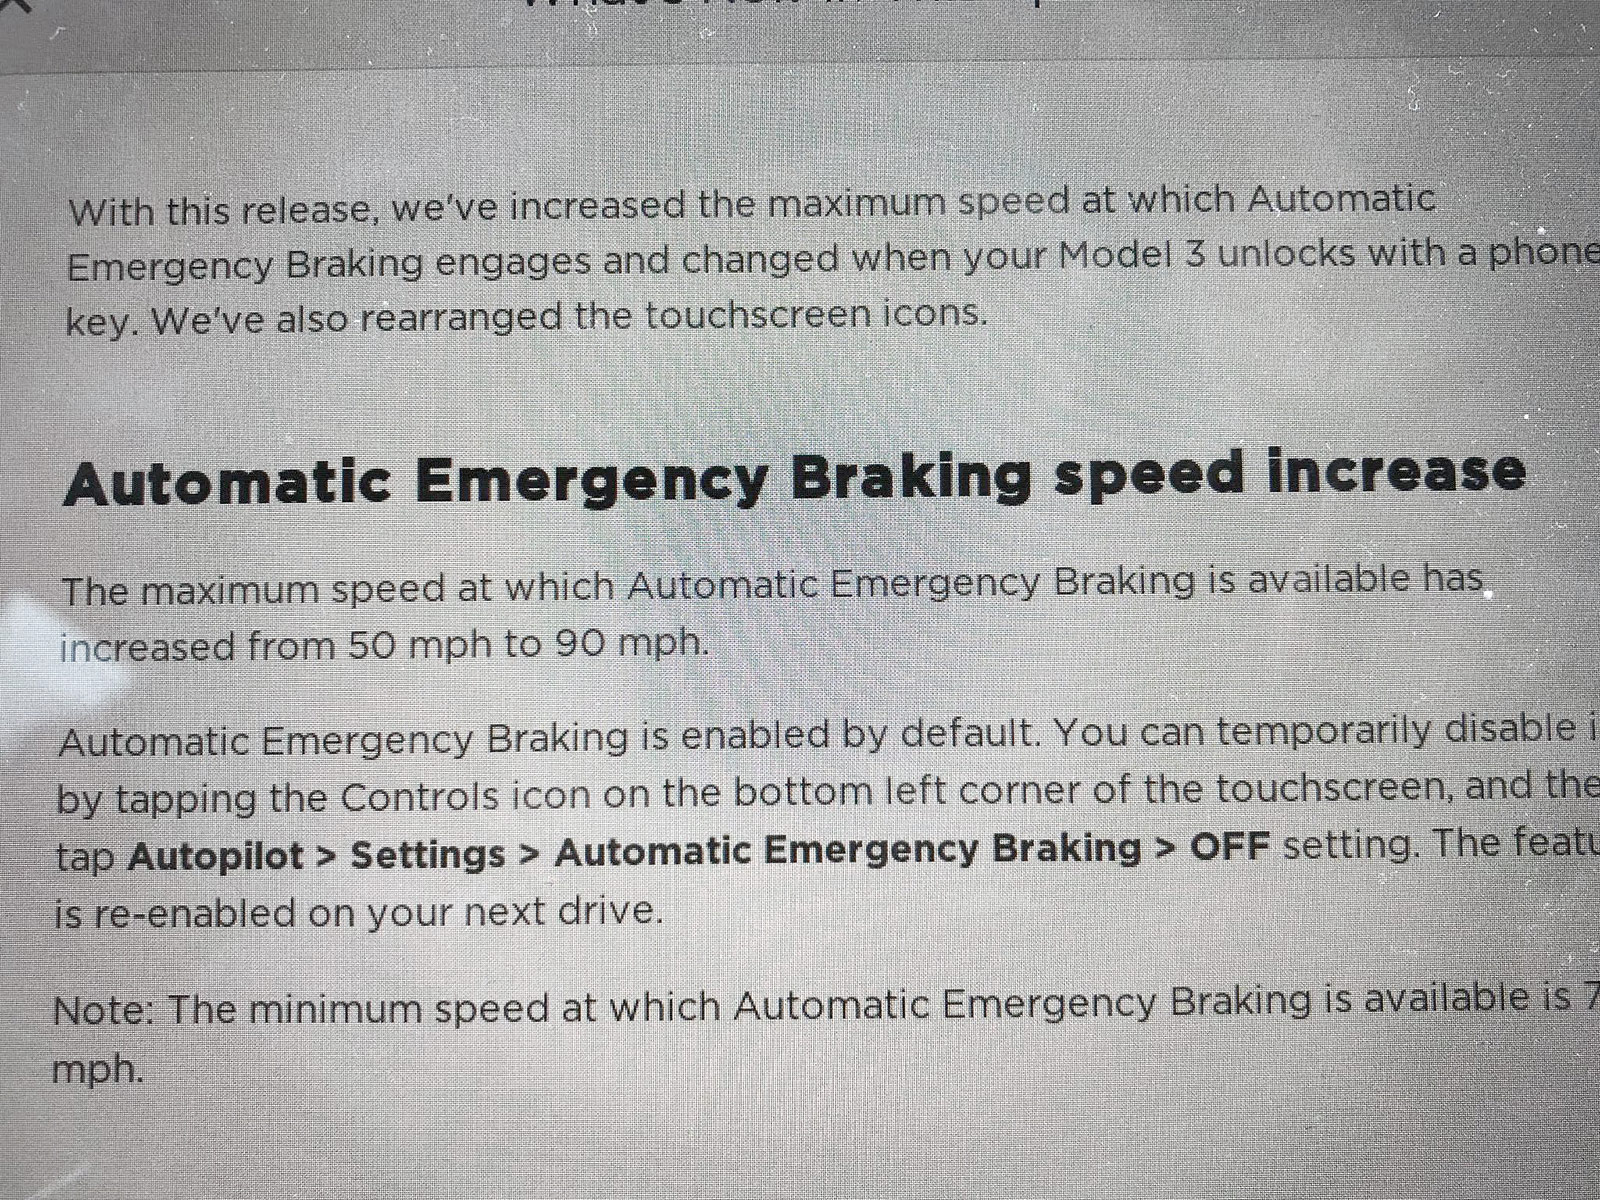 Tesla Model 3 - Automatic Emergency Braking Increased to 90 mph